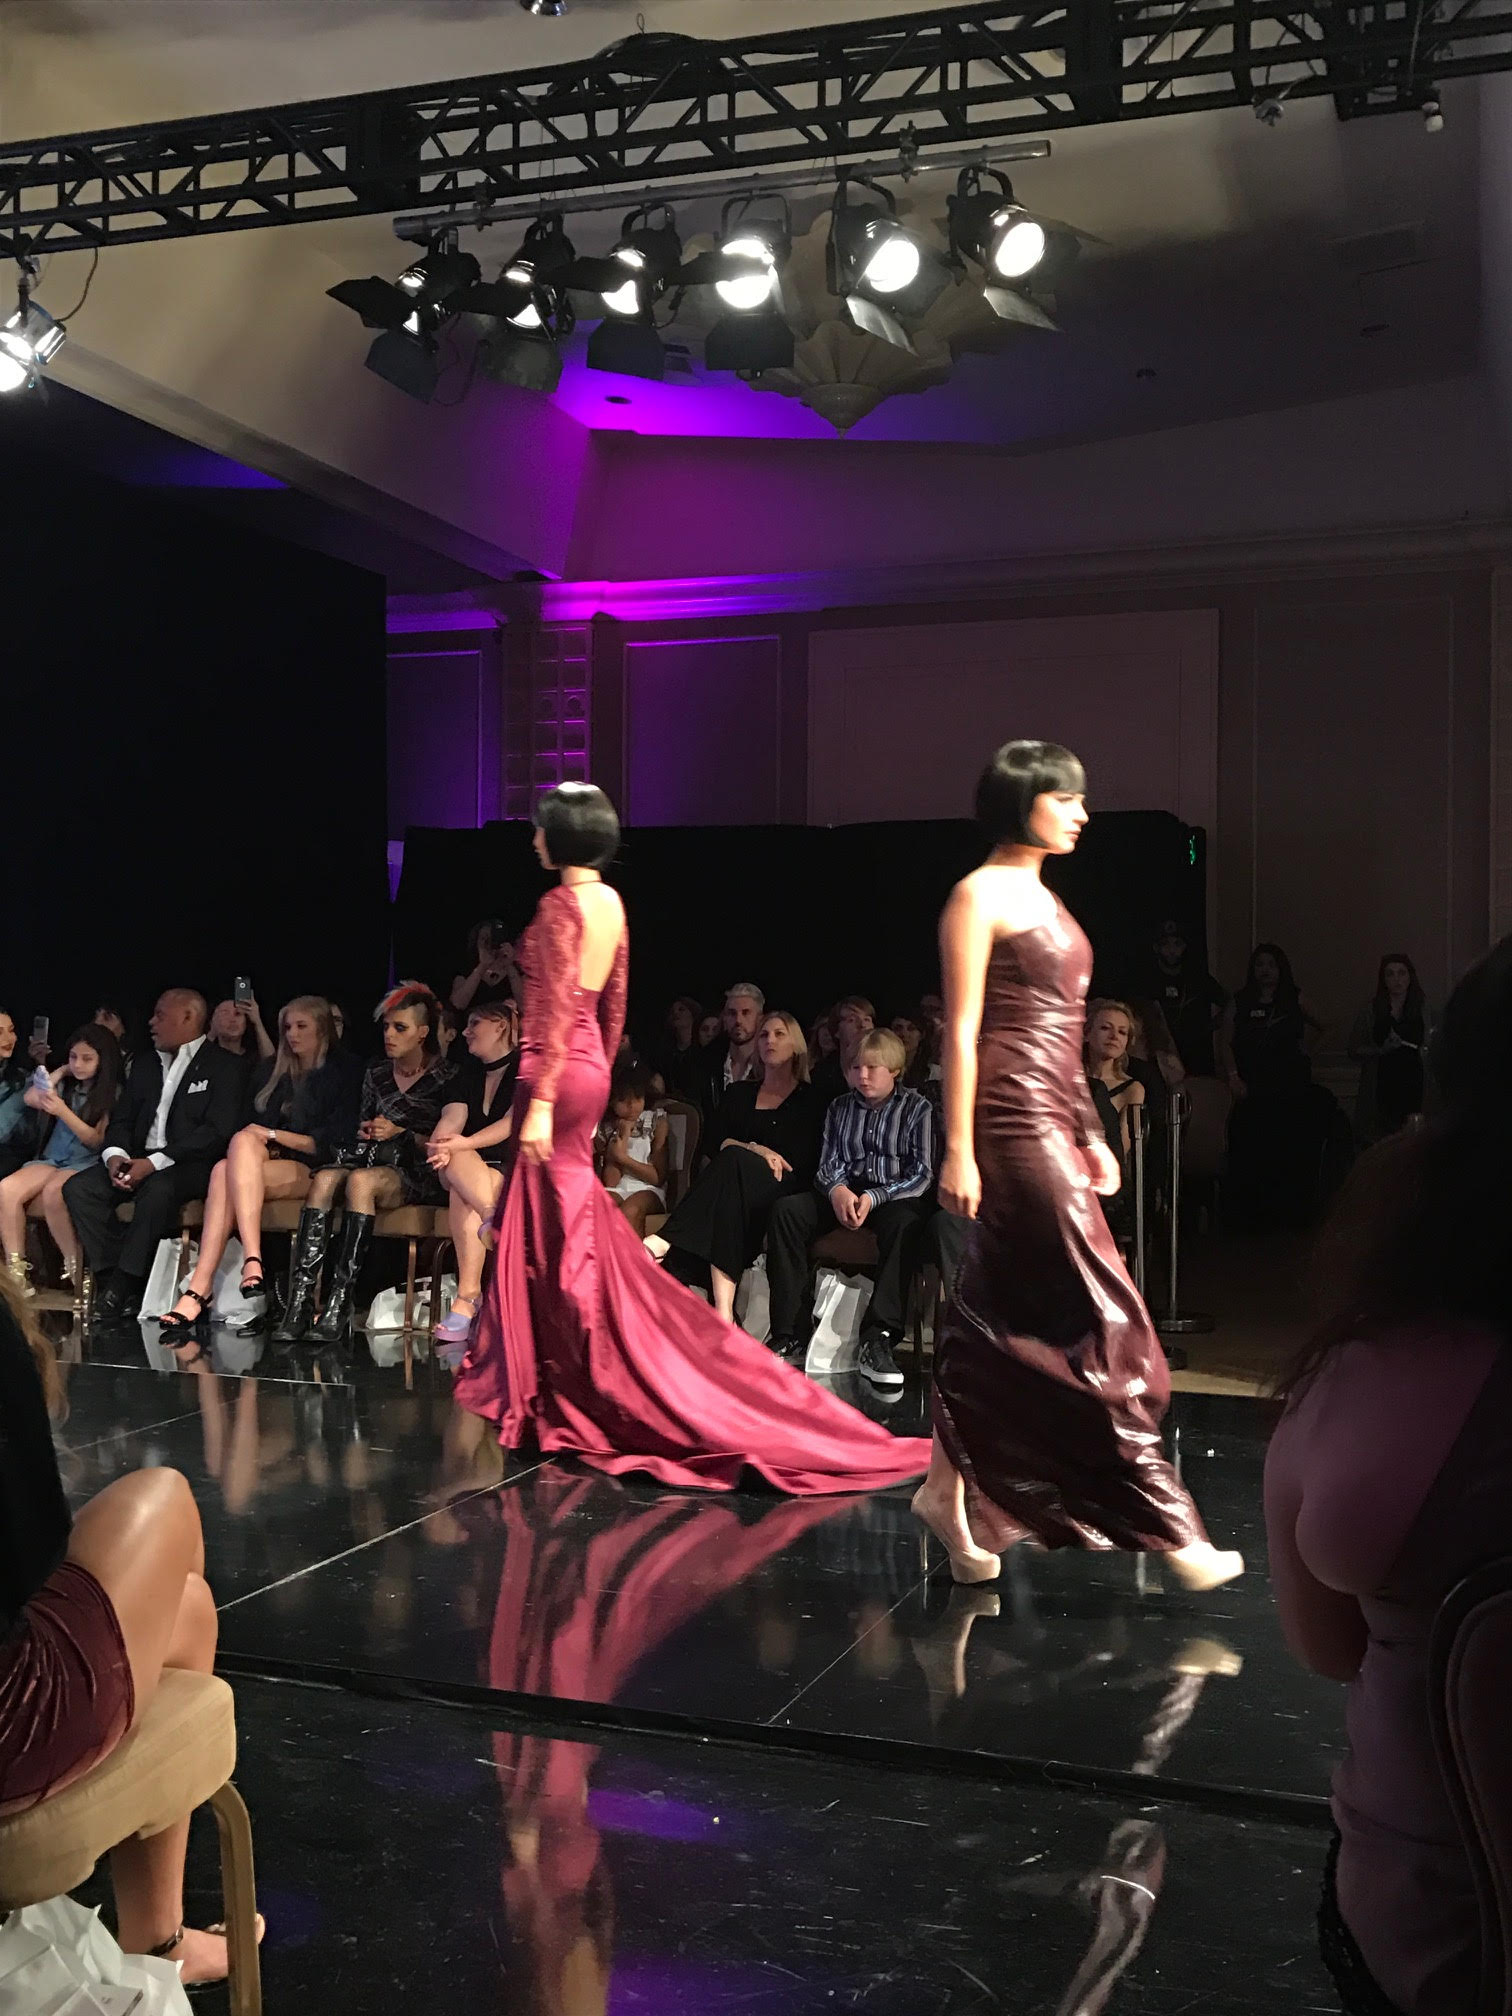 Art Hearts Fashion - LA Fashion Week in 90210